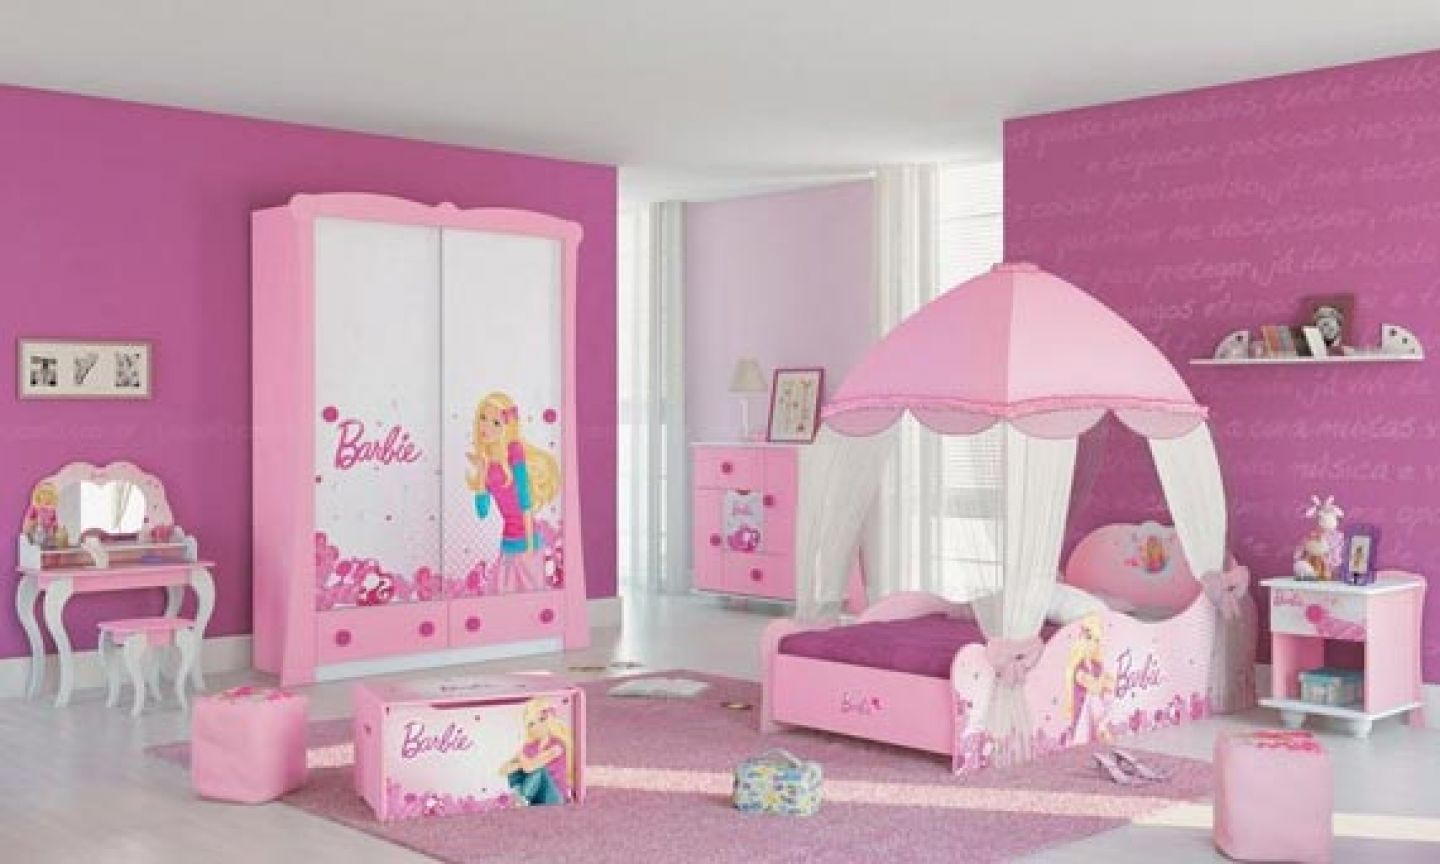 Kids Bedroom Photos trends in interior design for children - google search